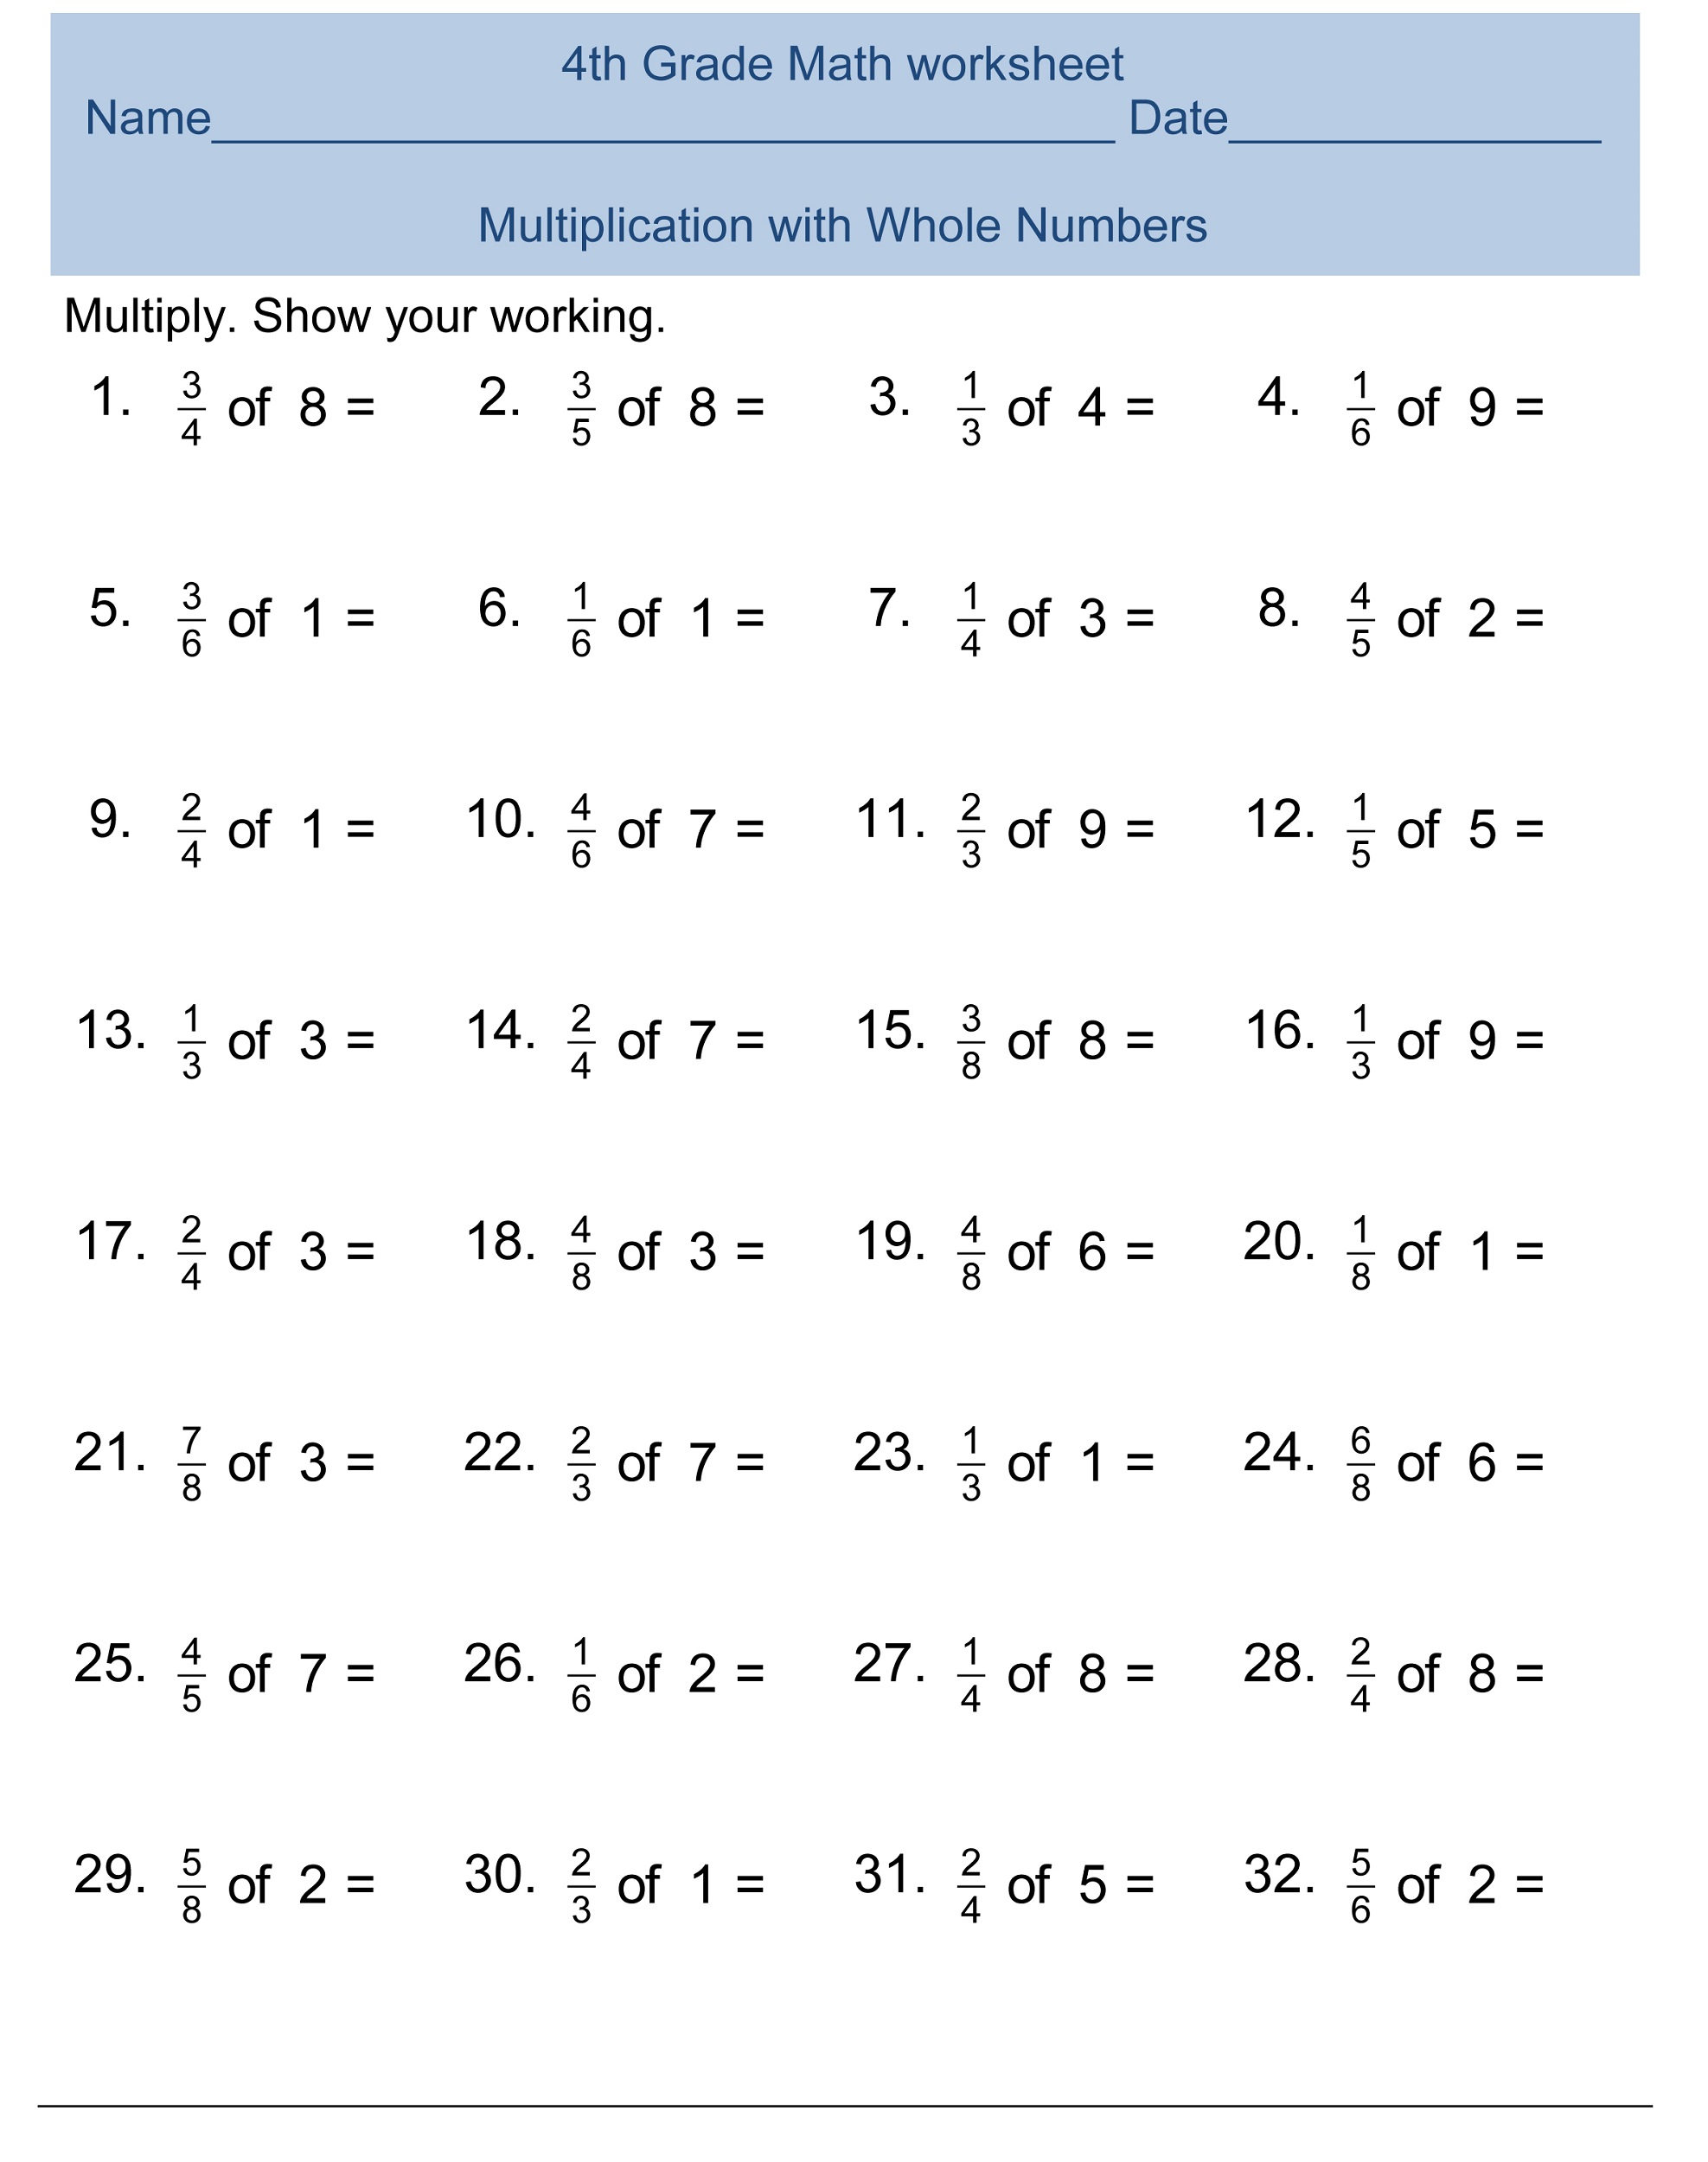 Multiplication of Whole Numbers and Fractions